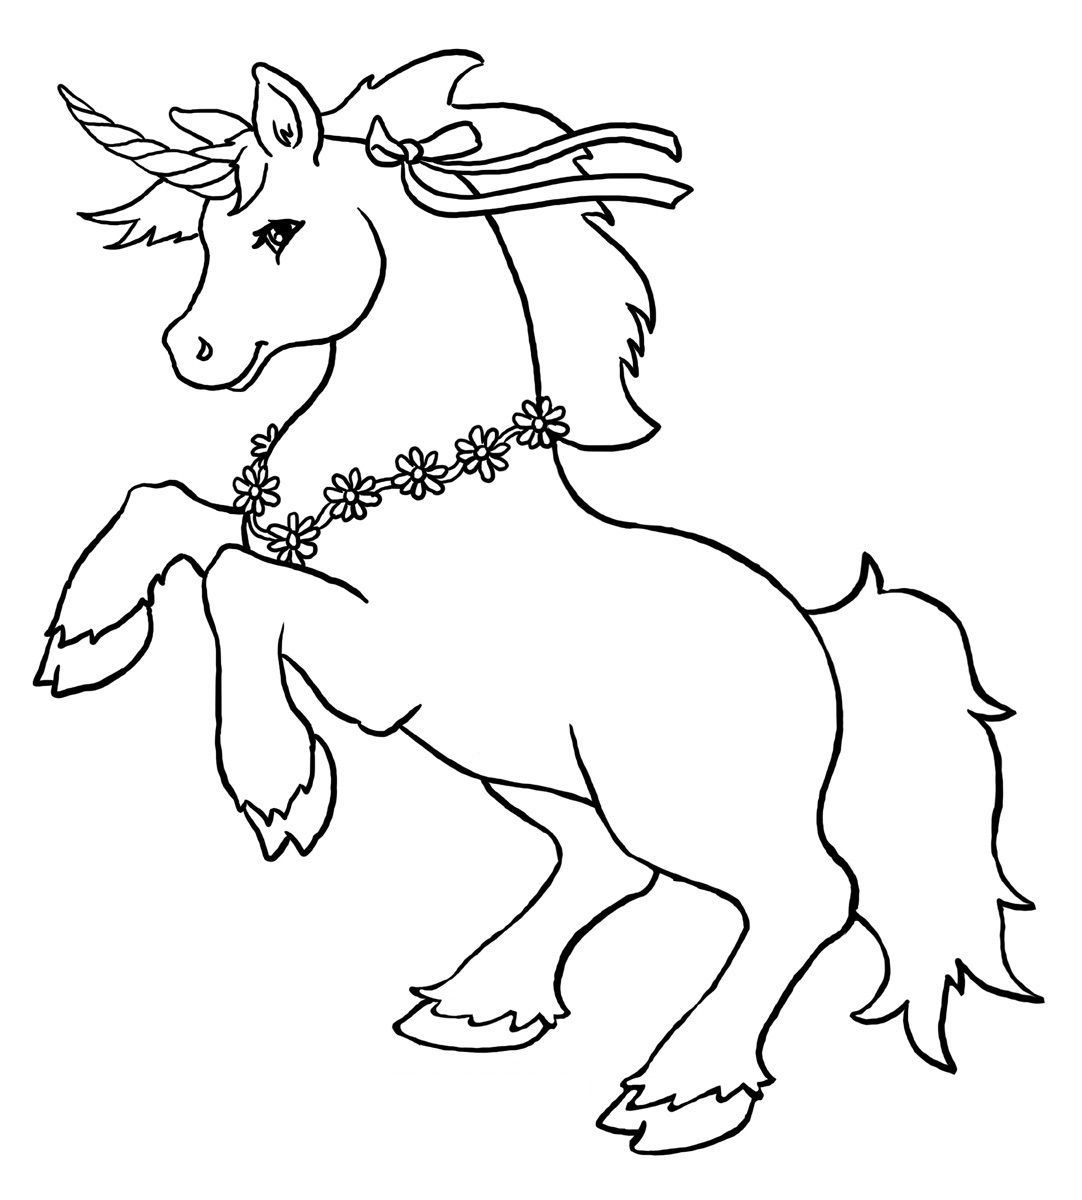 Unicorn coloring pages for kids free printable unicorn coloring pages for kids